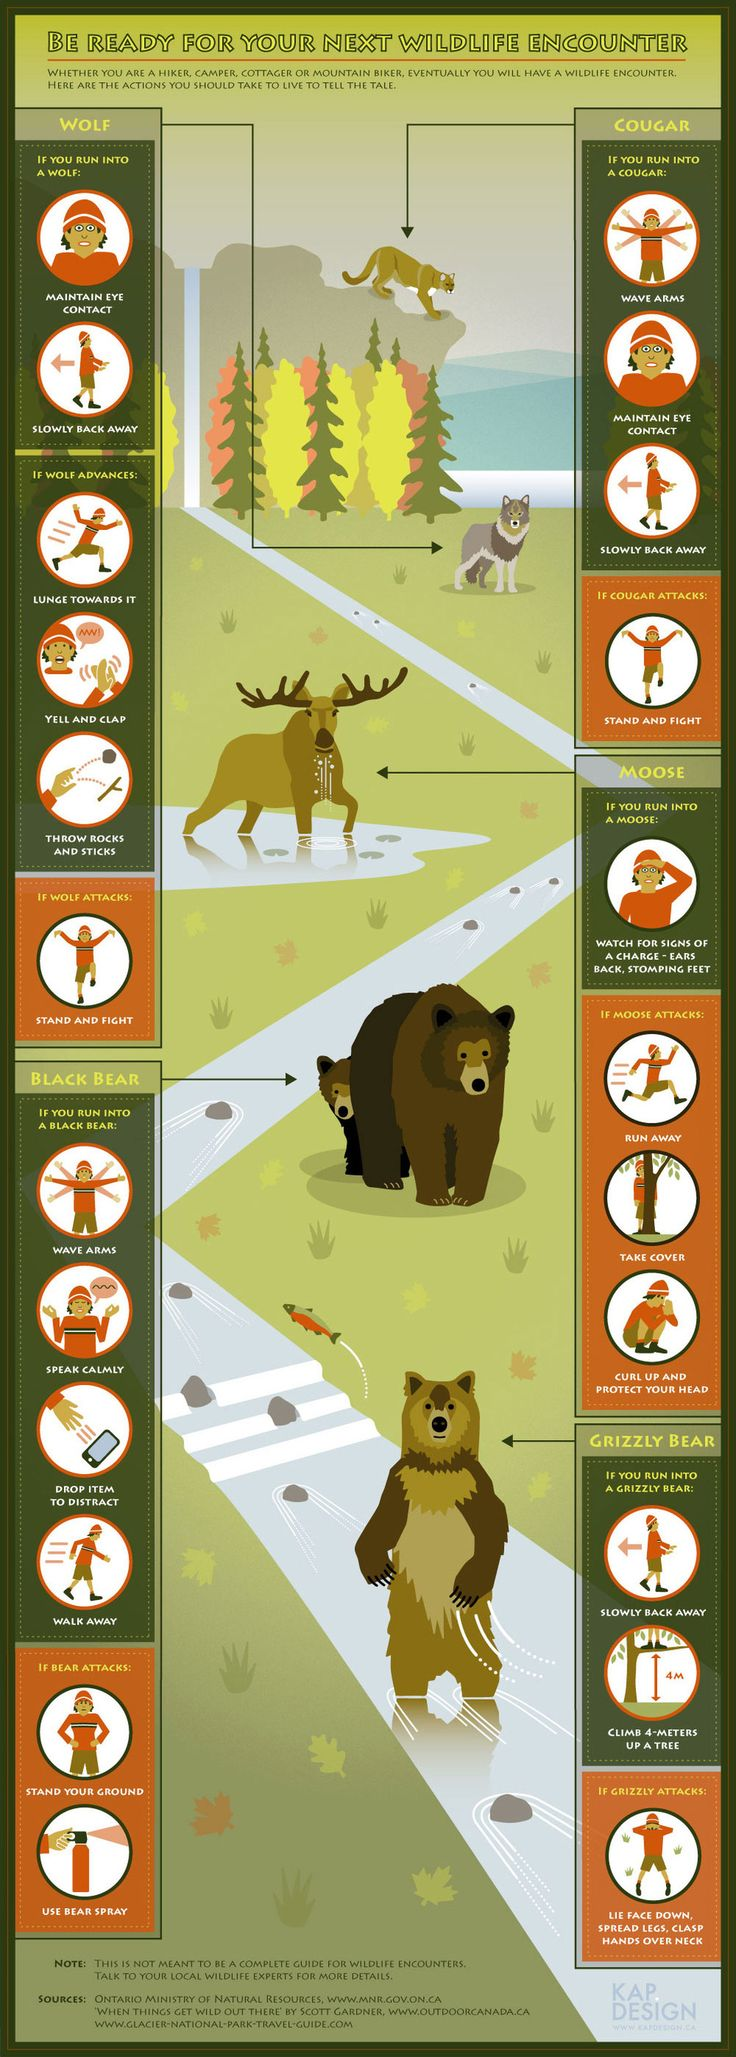 How to React to a Wildlife Encounter